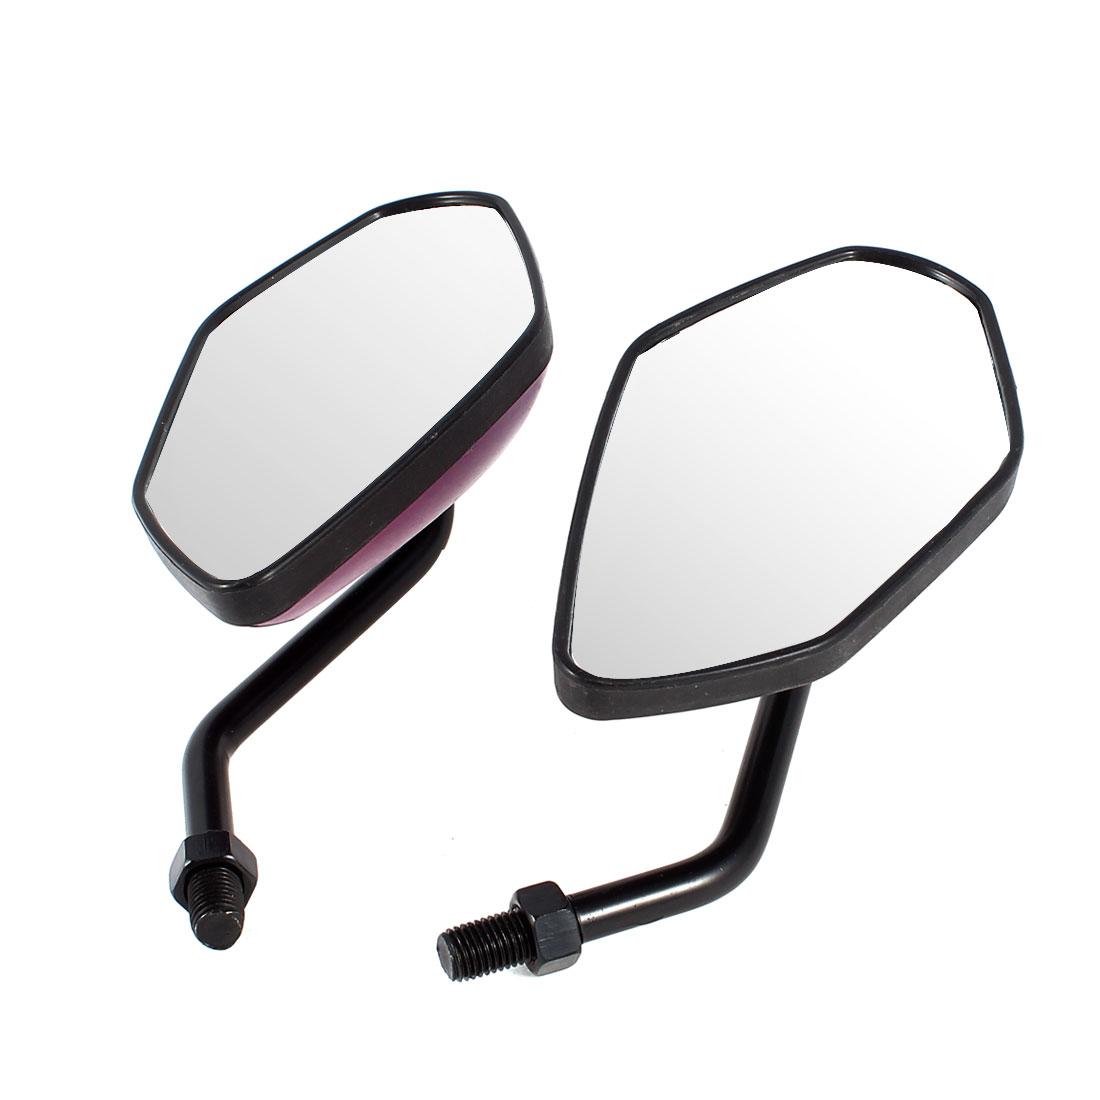 2 Pcs Black Purple Fire Prints Motorbike Wide Angle Blind Spot Rearview Mirror